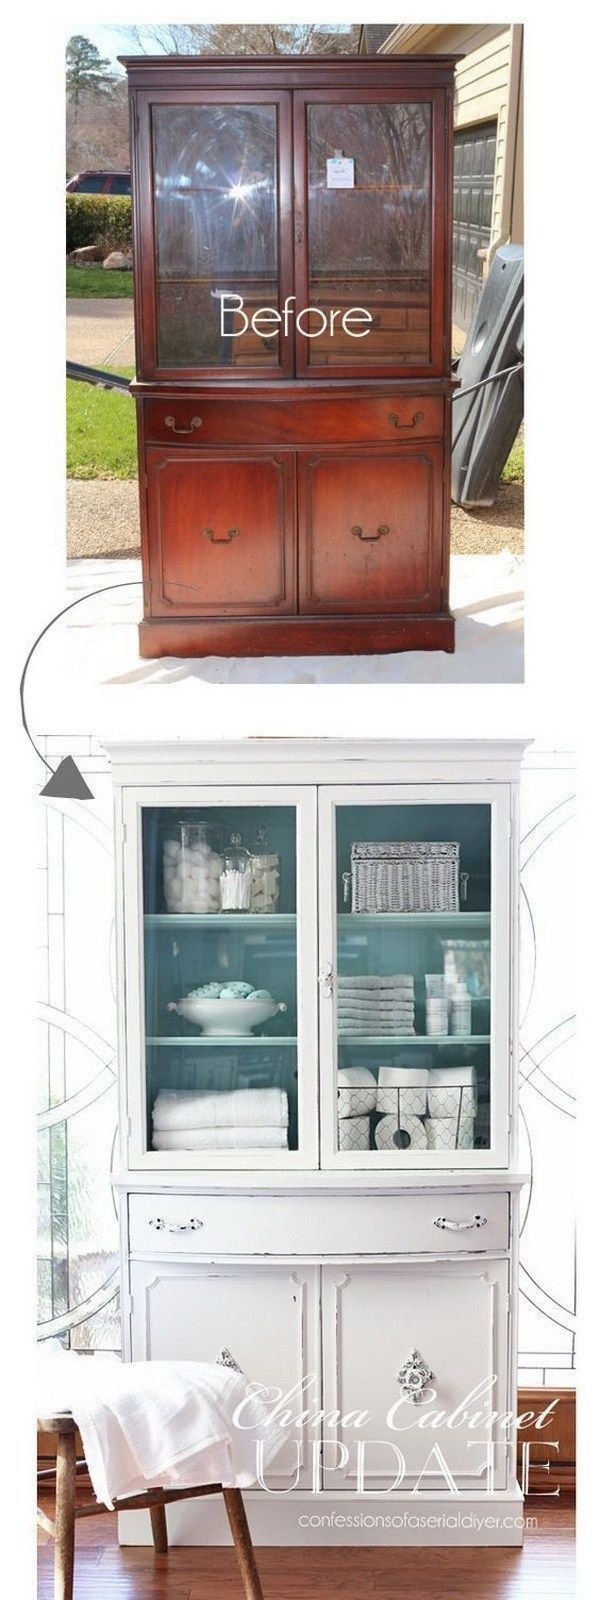 1260 Best Diy Images On Pinterest | Home Ideas, Organization Ideas intended for Geo Capiz Sideboards (Image 3 of 30)